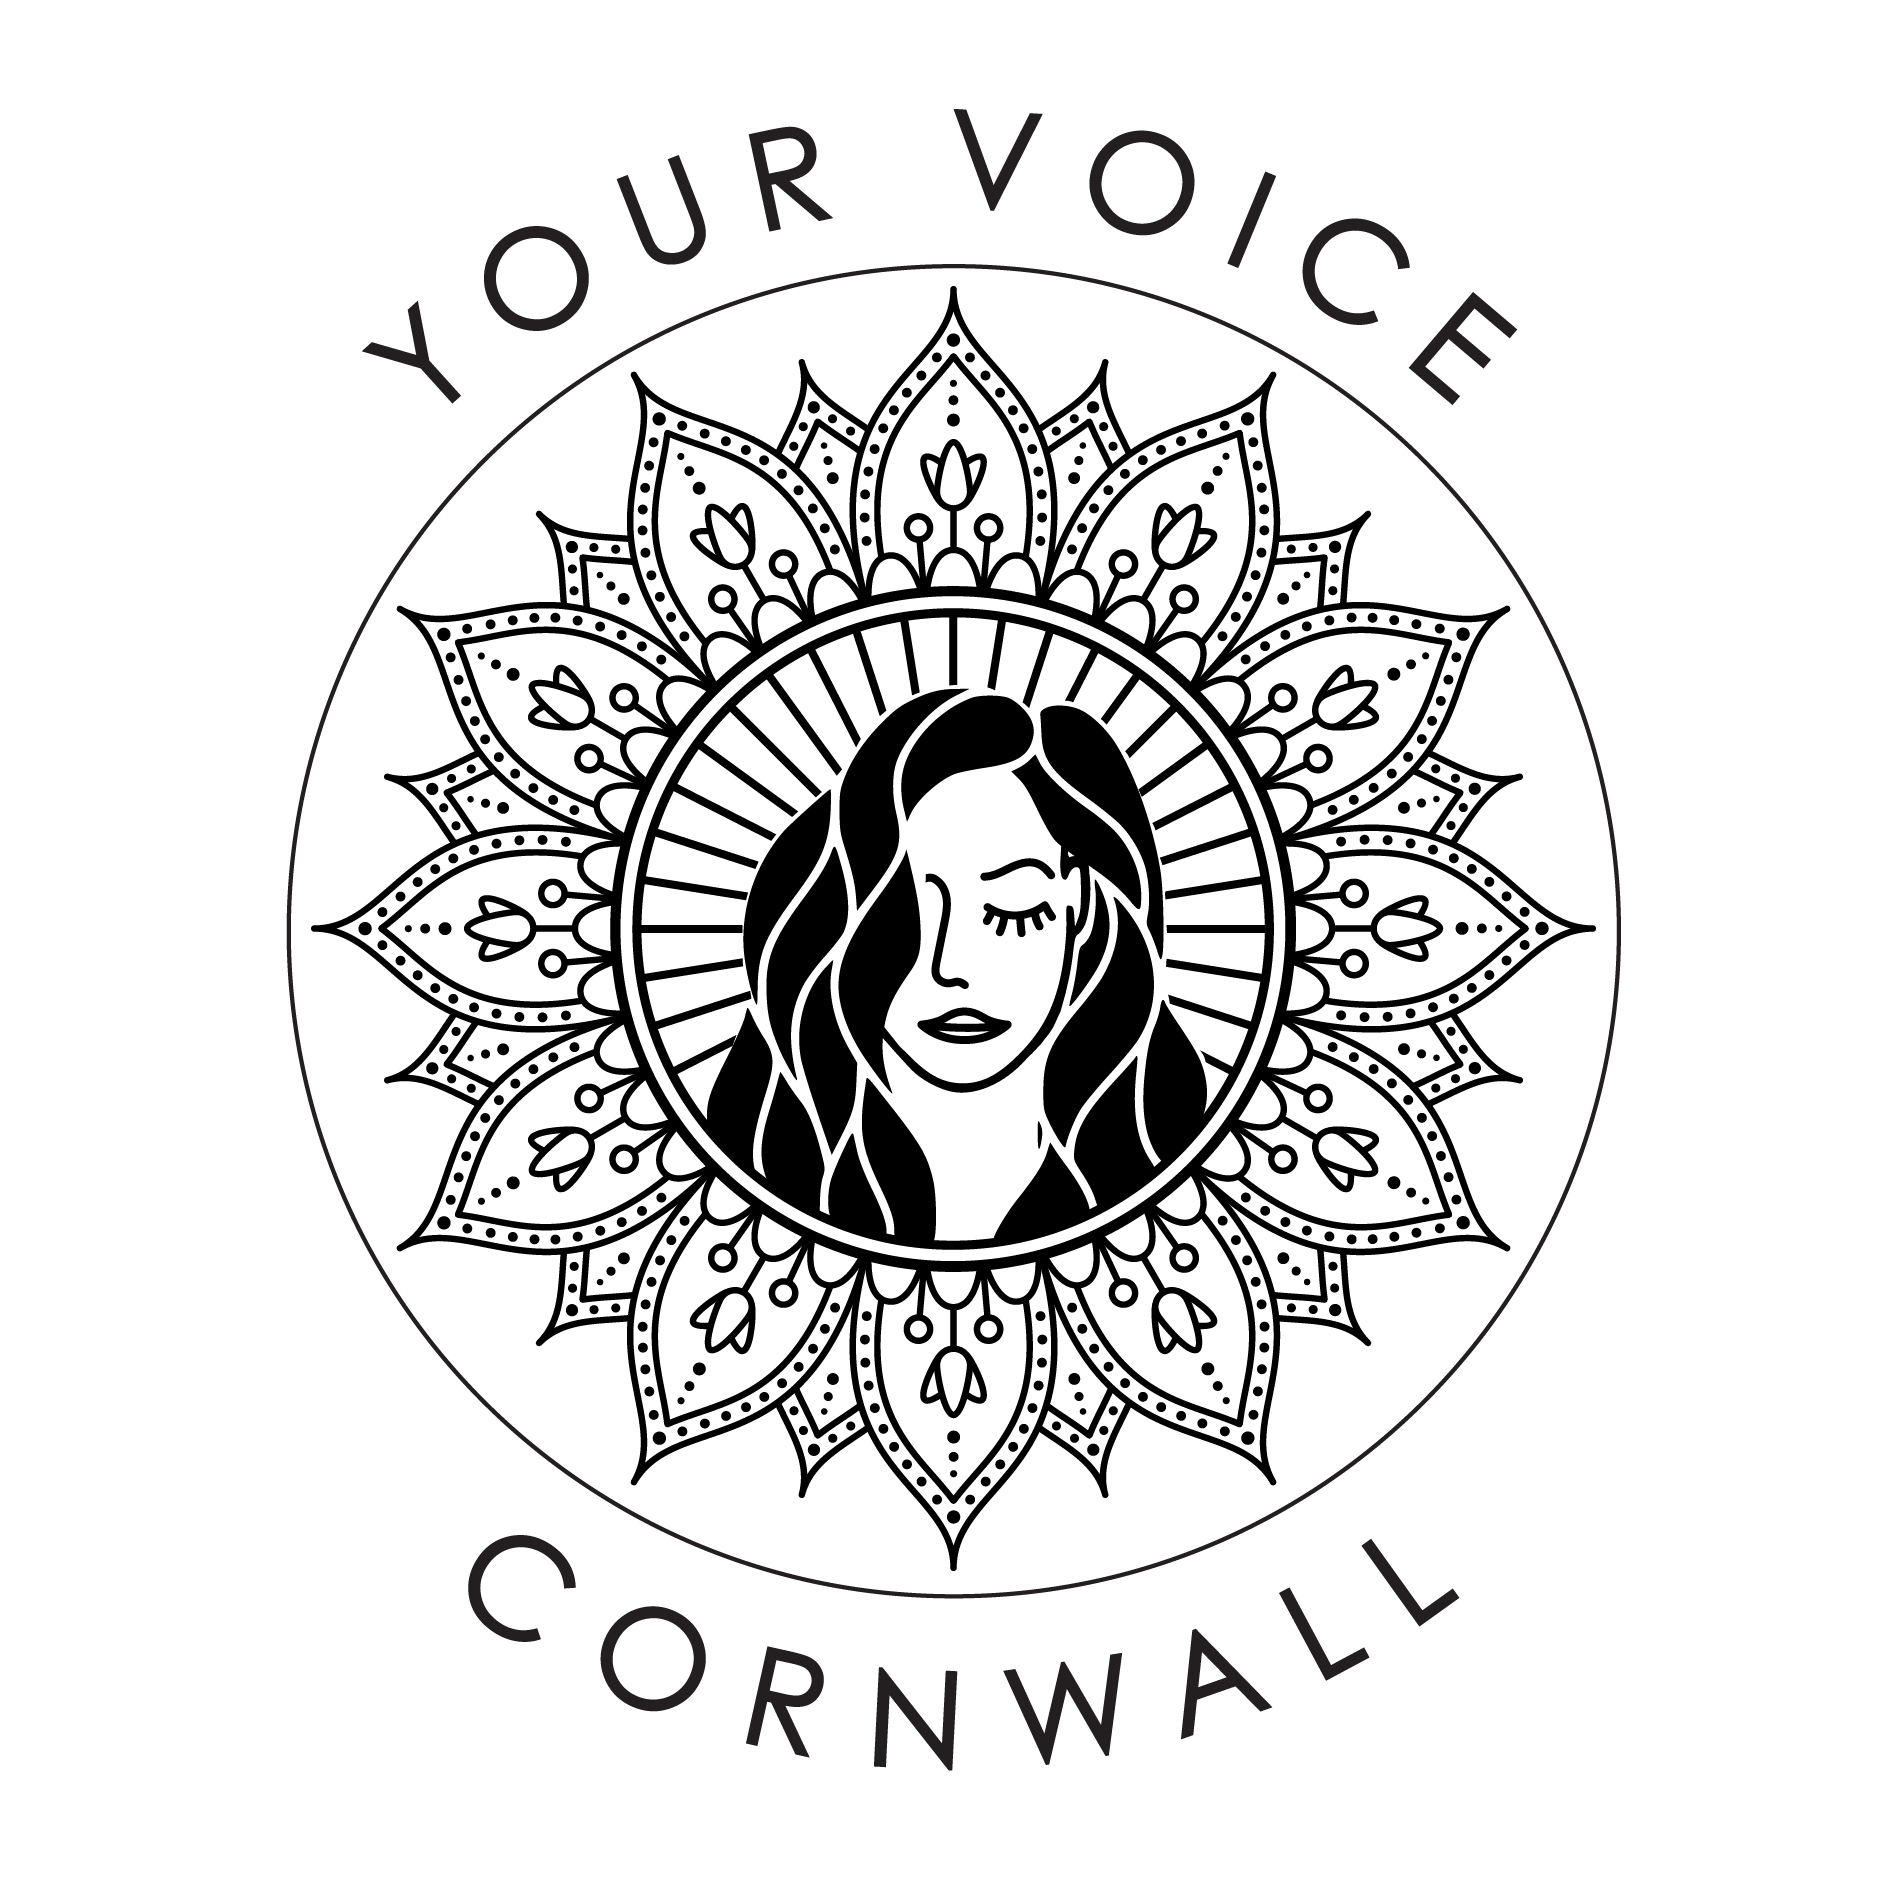 Your Voice, Cornwall CIC